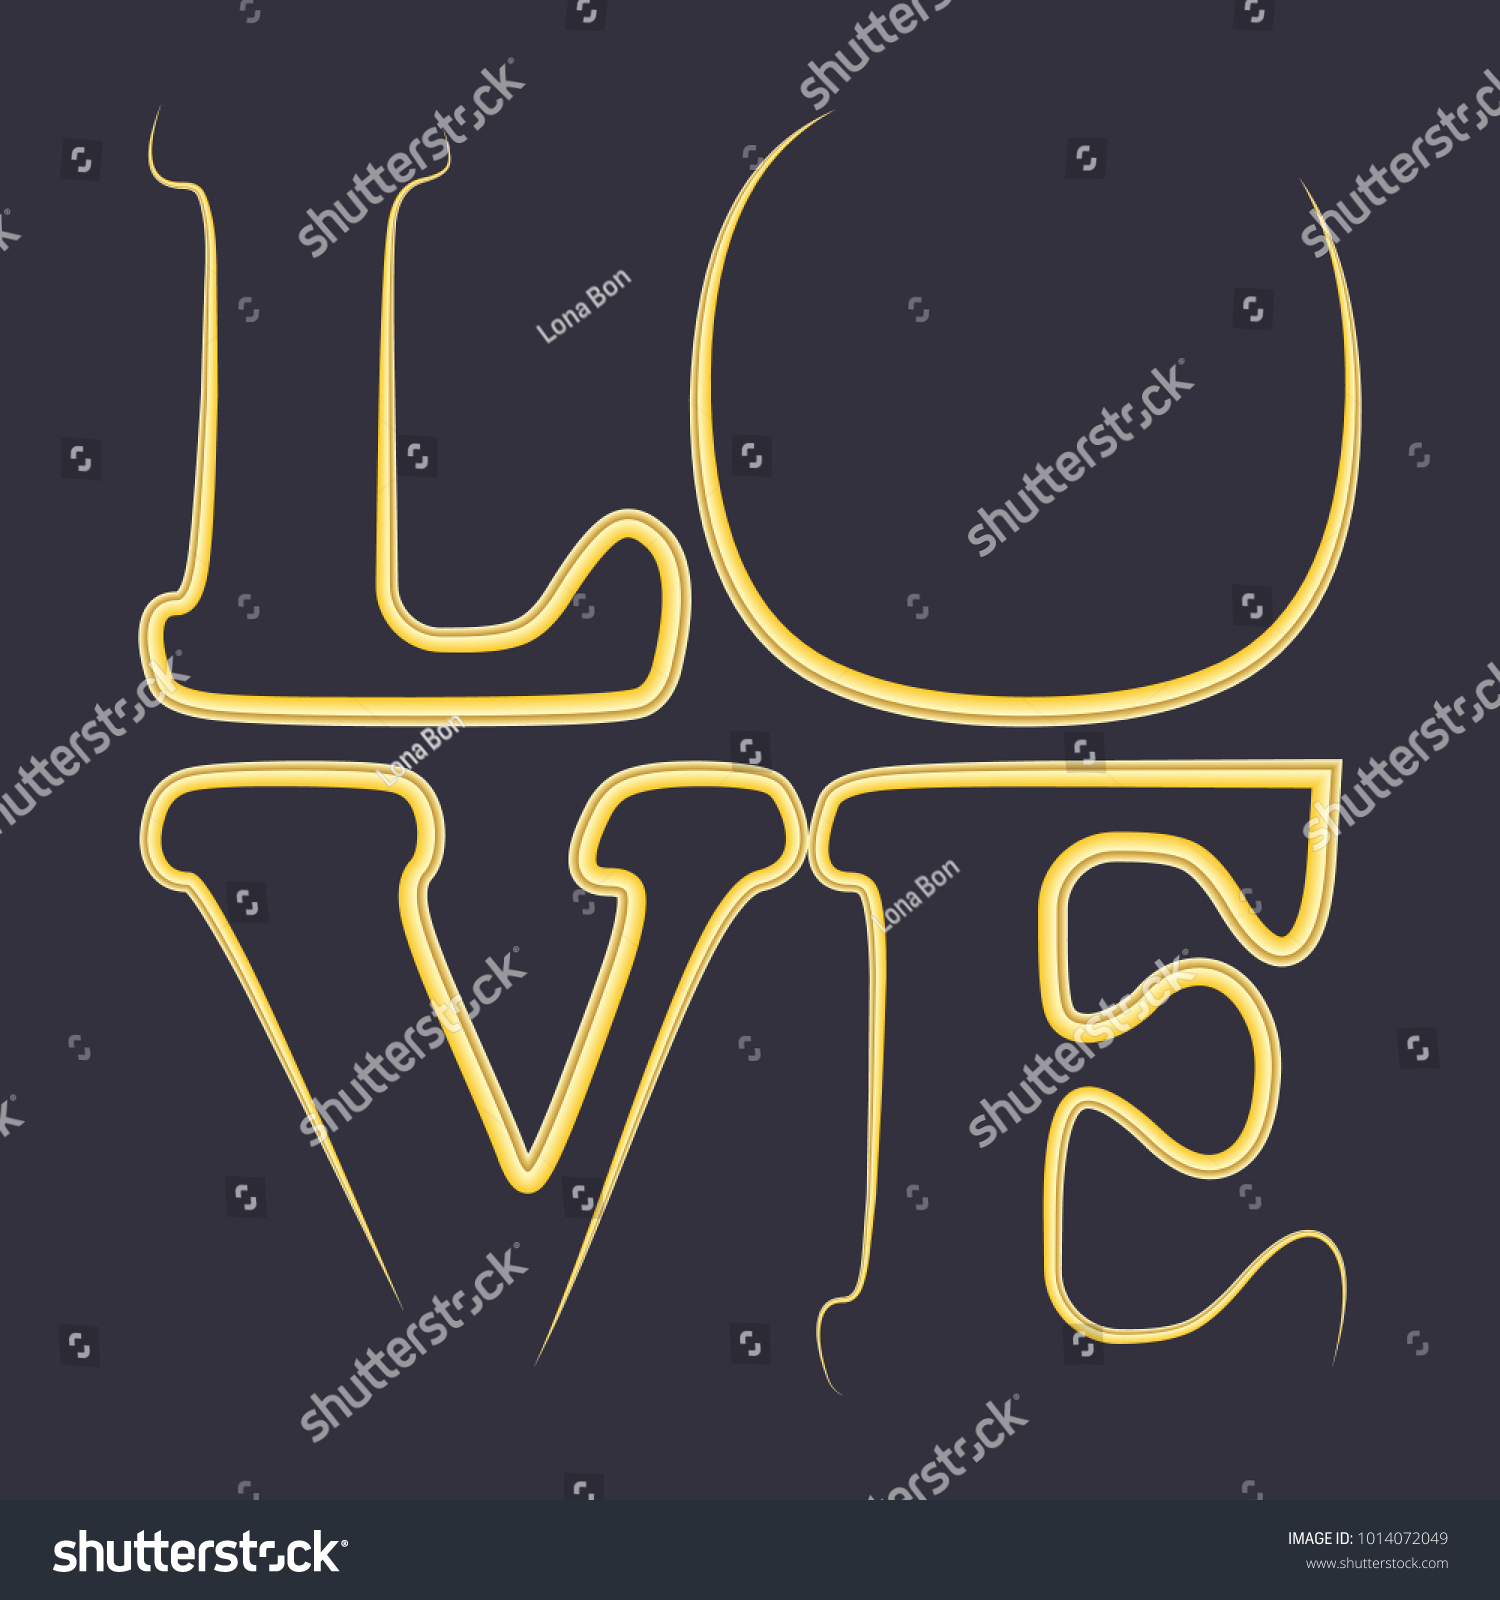 Love Word Happy Valentines Day Greeting Card Valentines Day Simple Background For Design Or